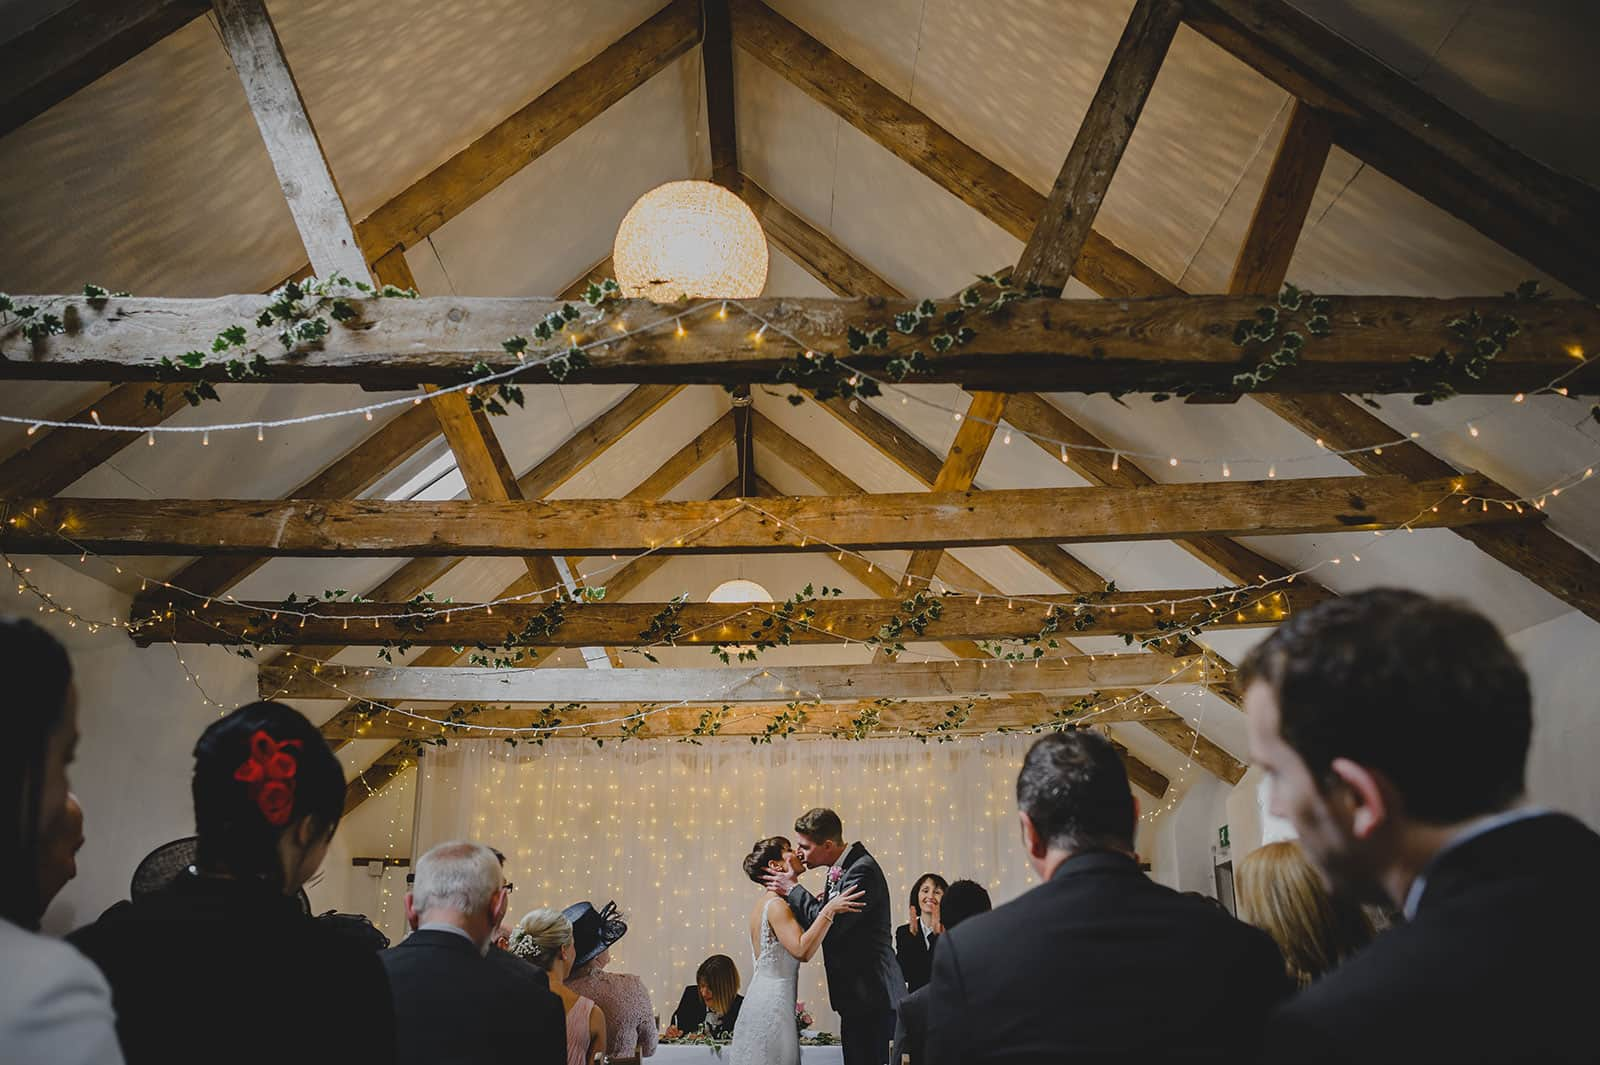 Newly weds kissing after the ceremony in a wedding barn at a A Countryside wedding venue